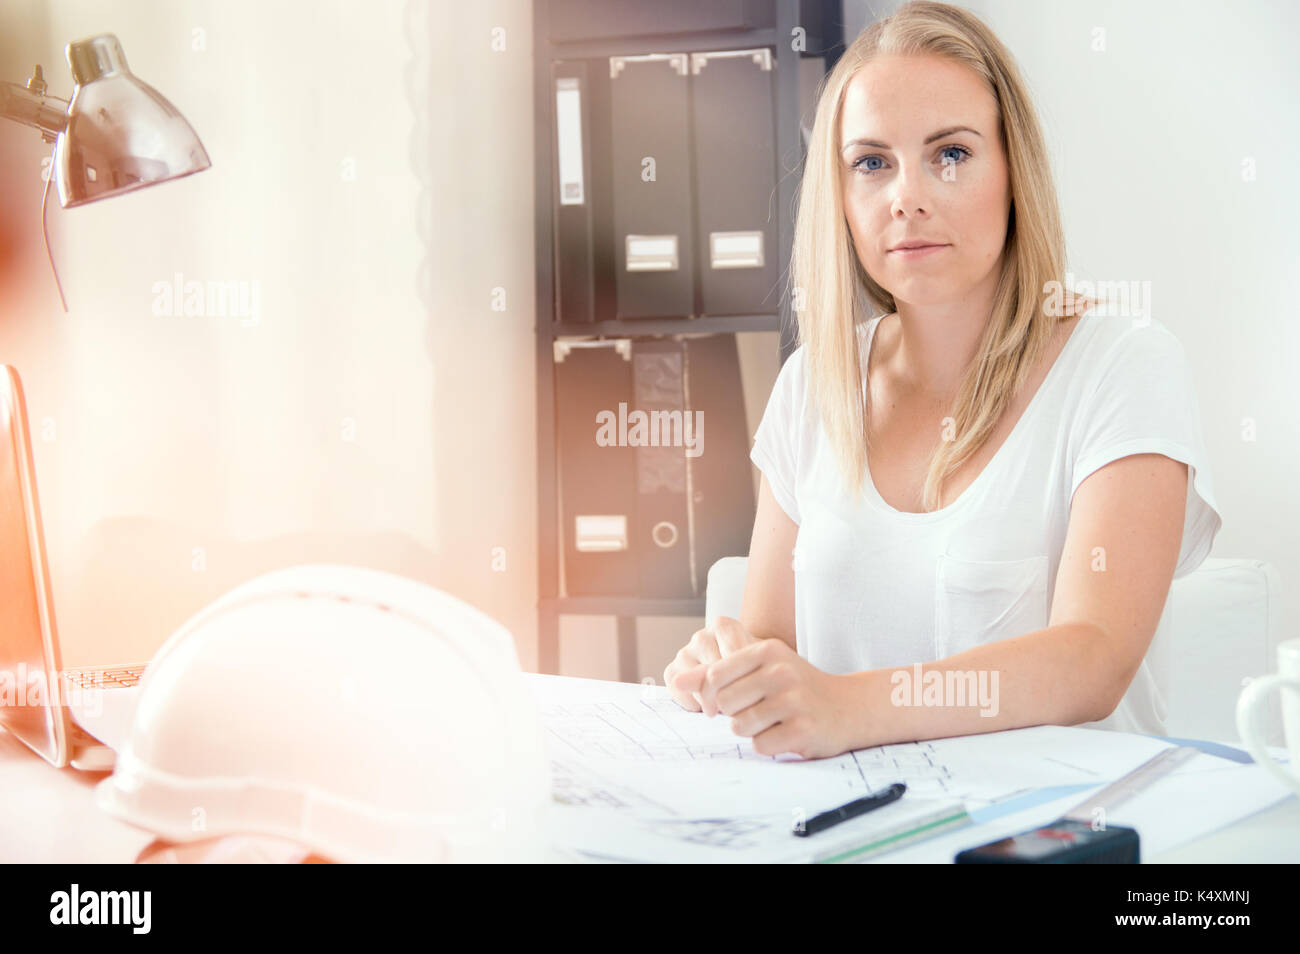 Architect is working with her new project at home office - Stock Image